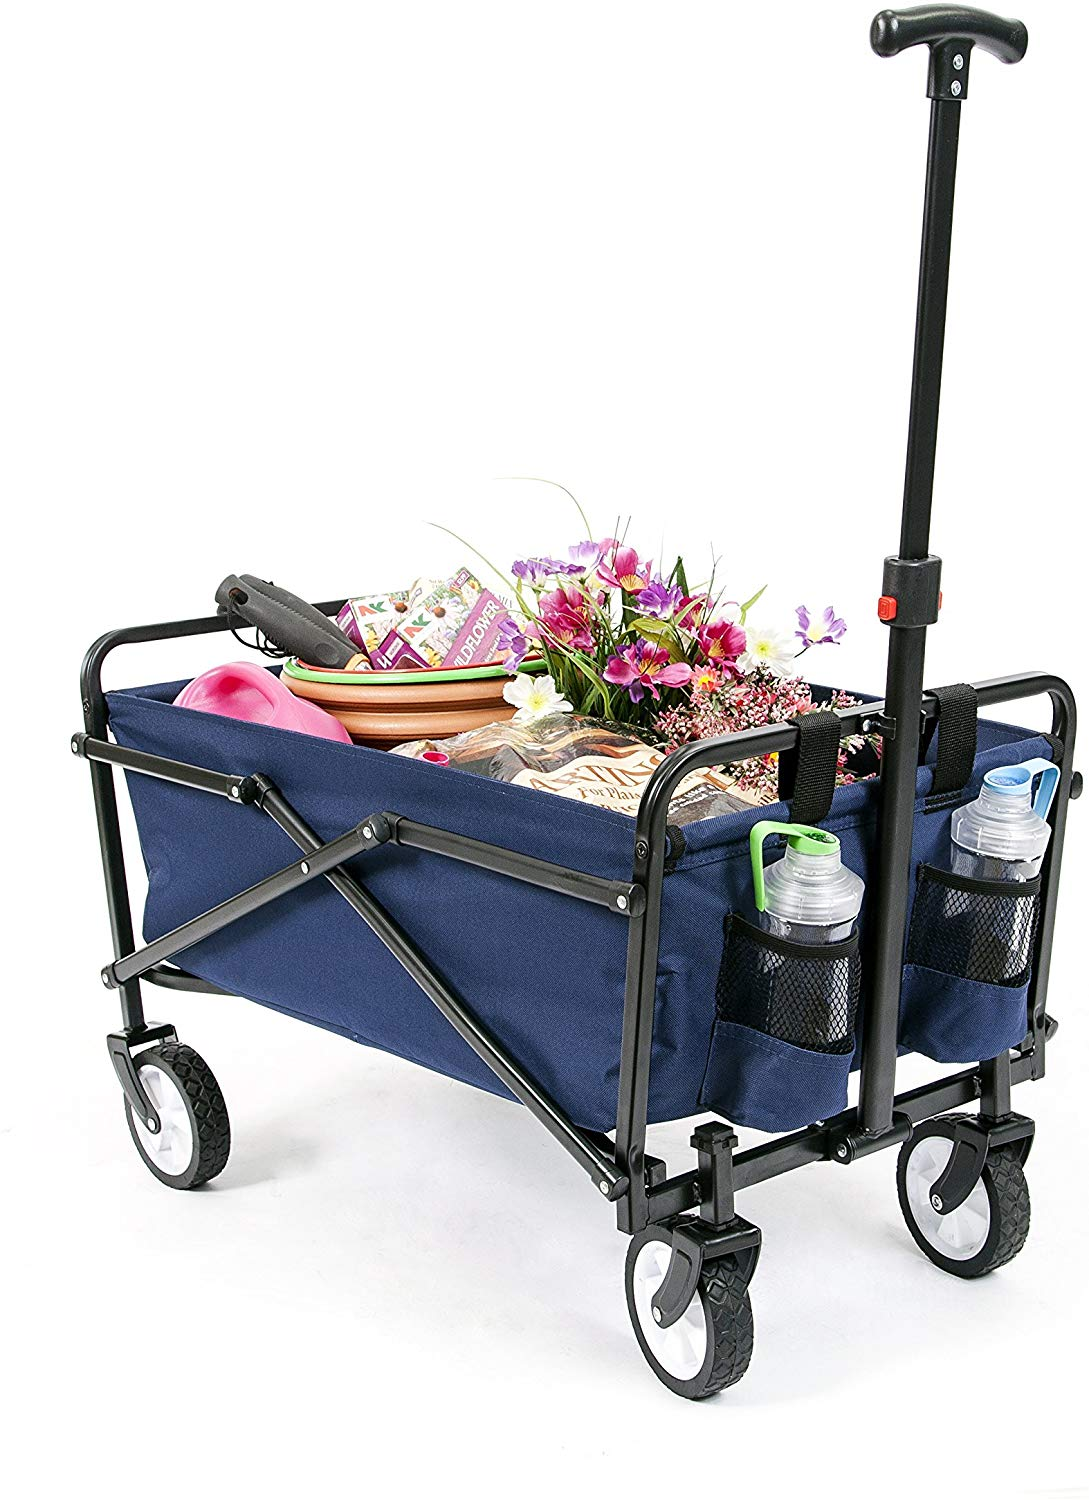 Best Folding Collapsible Wagon 2020